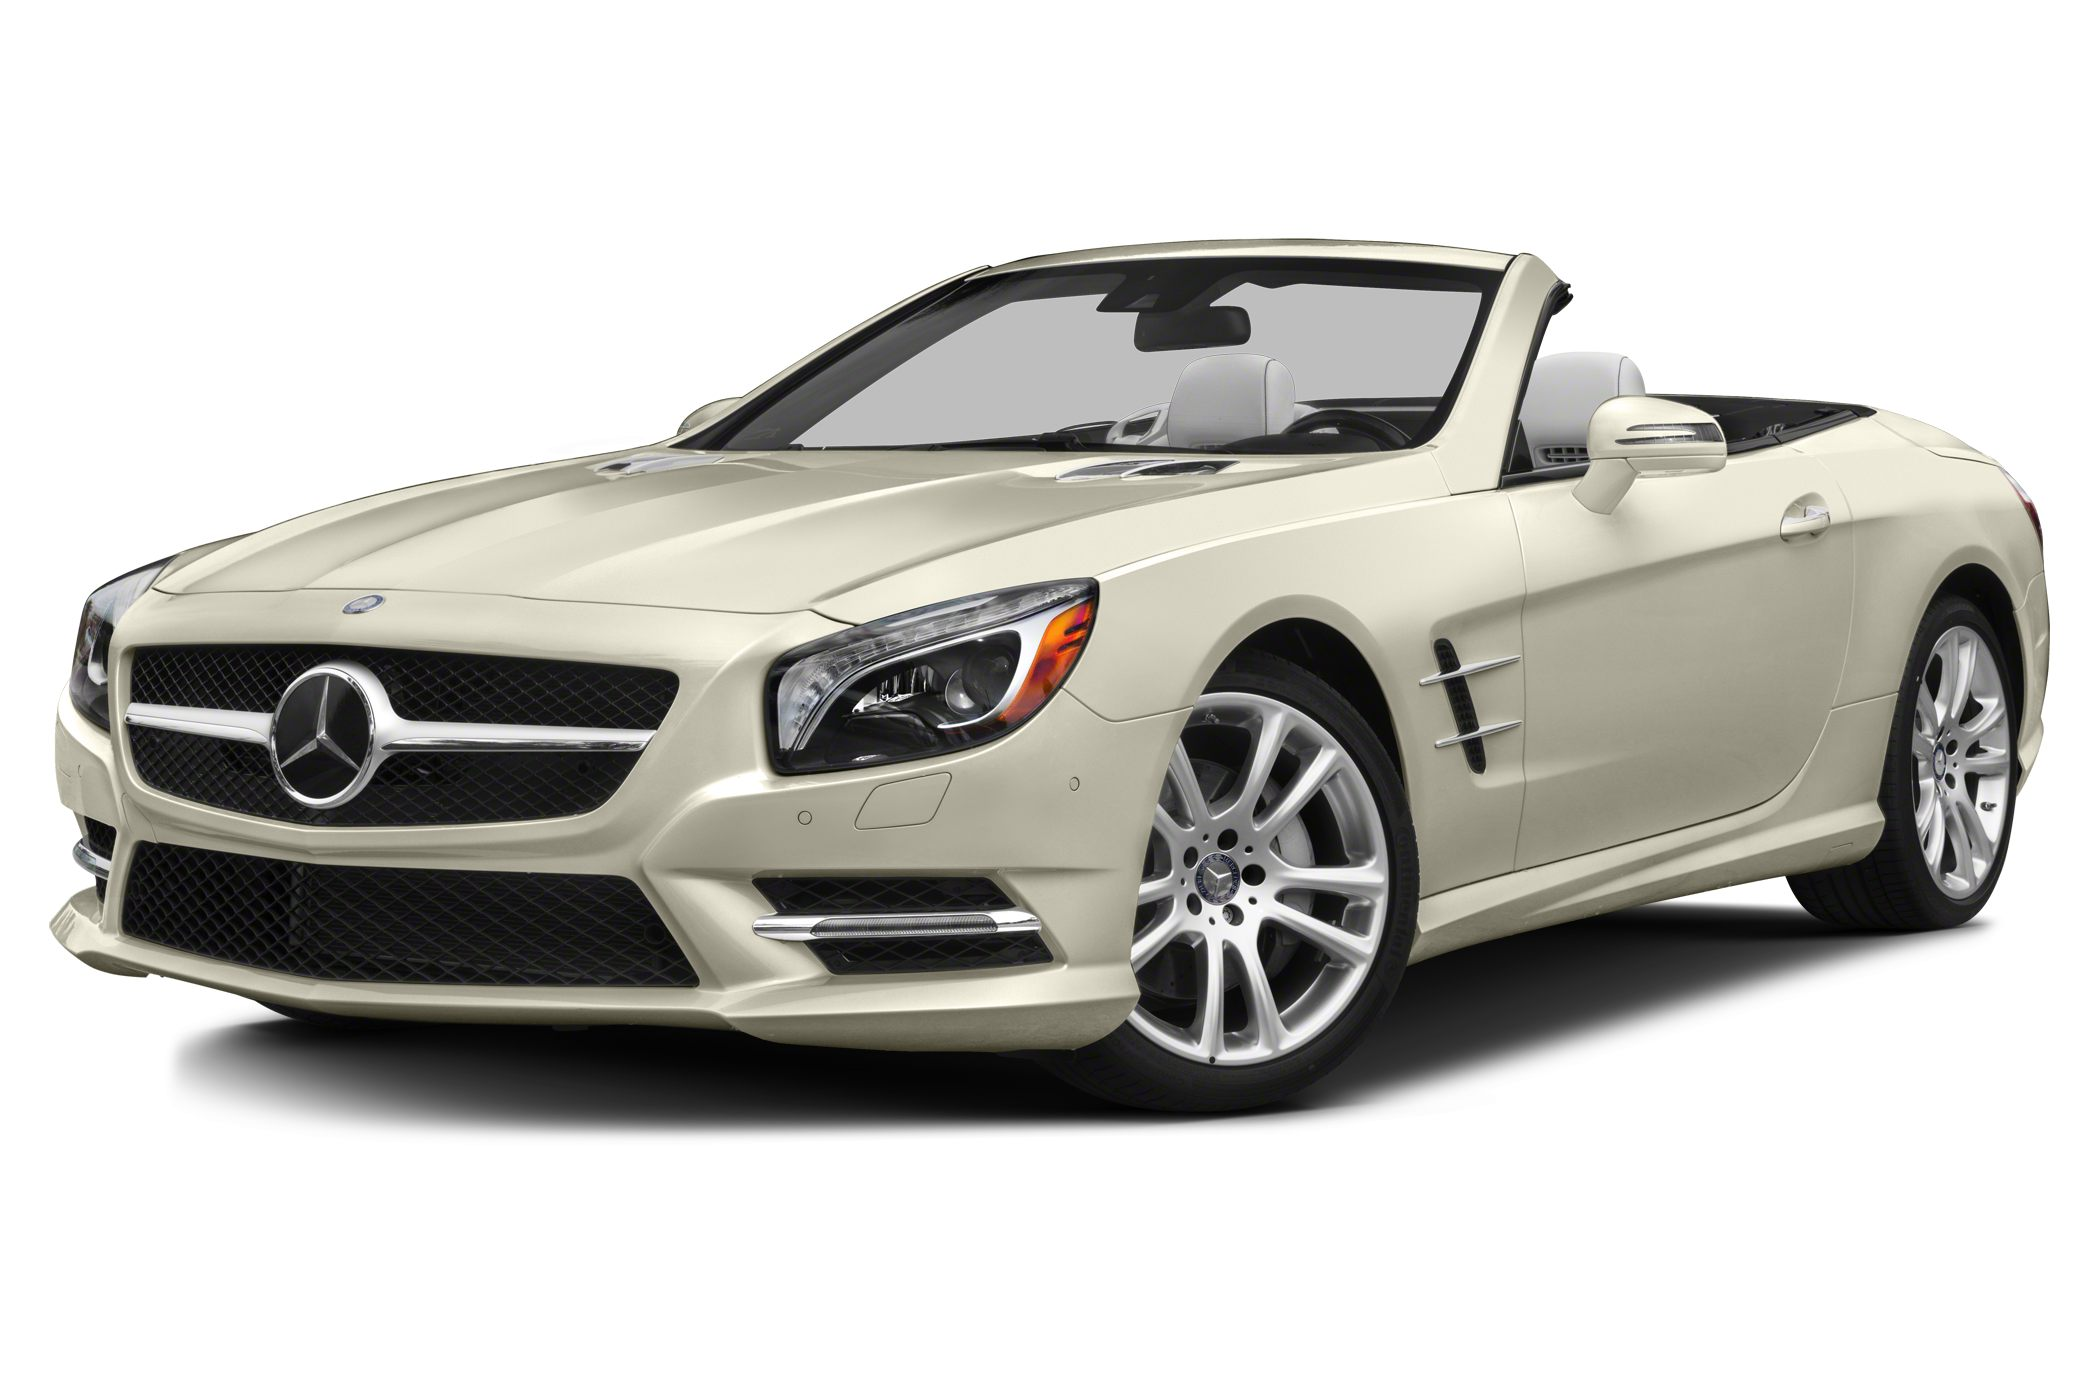 2015 Mercedes-Benz SL-Class SL400 Convertible for sale in Los Angeles for $90,815 with 6 miles.